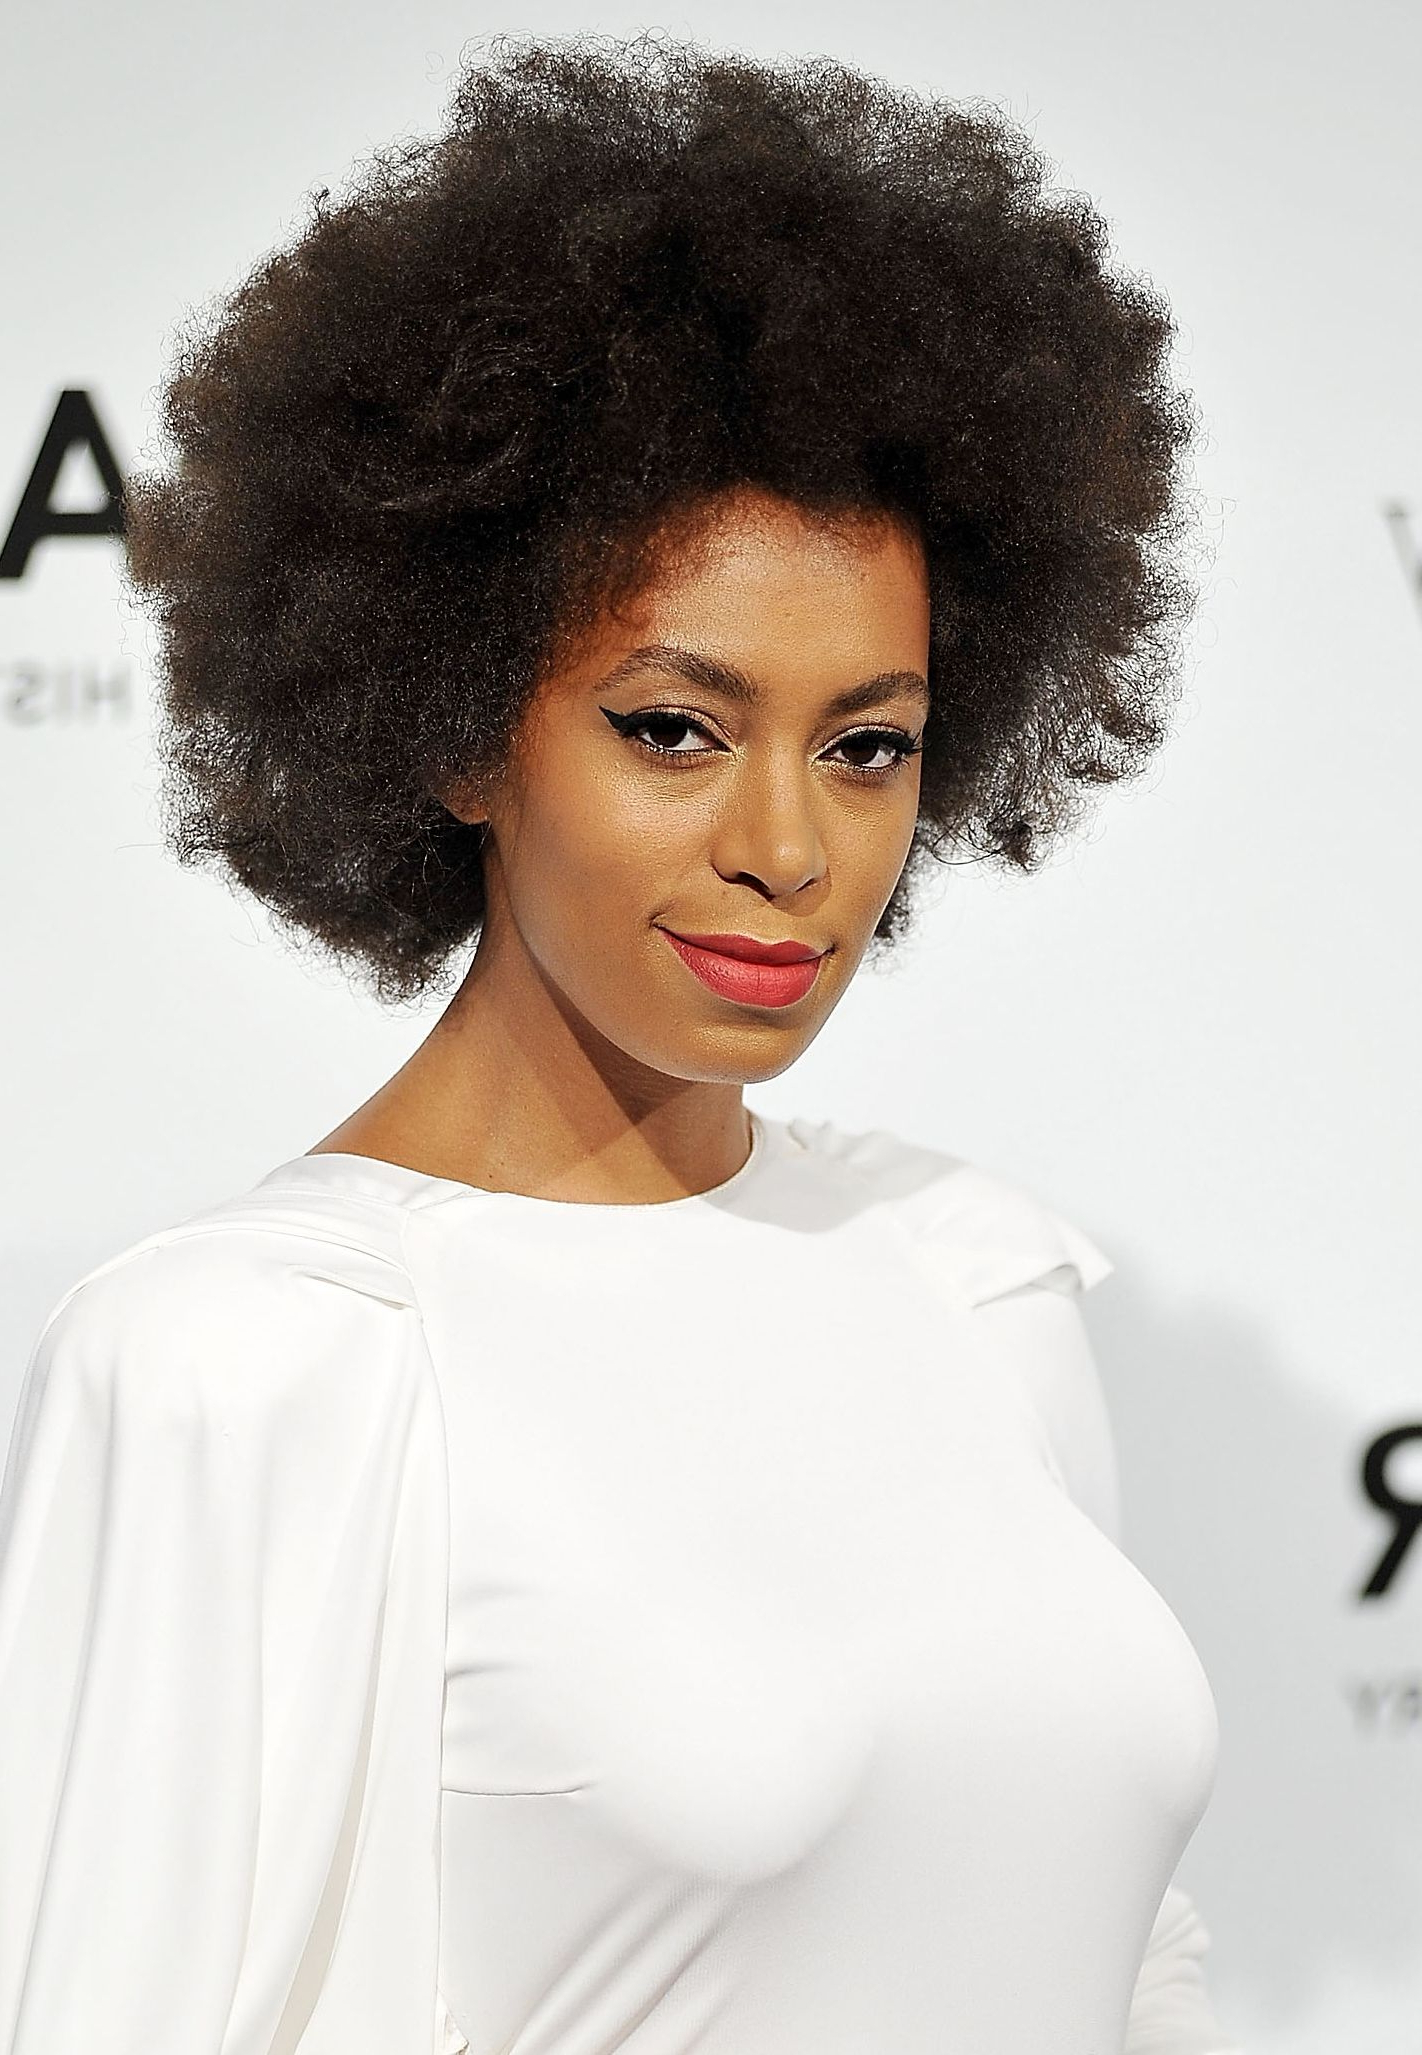 Newest Medium Haircuts For Black Women With Natural Hair Pertaining To 30 Easy Natural Hairstyles For Black Women – Short, Medium & Long (View 16 of 20)